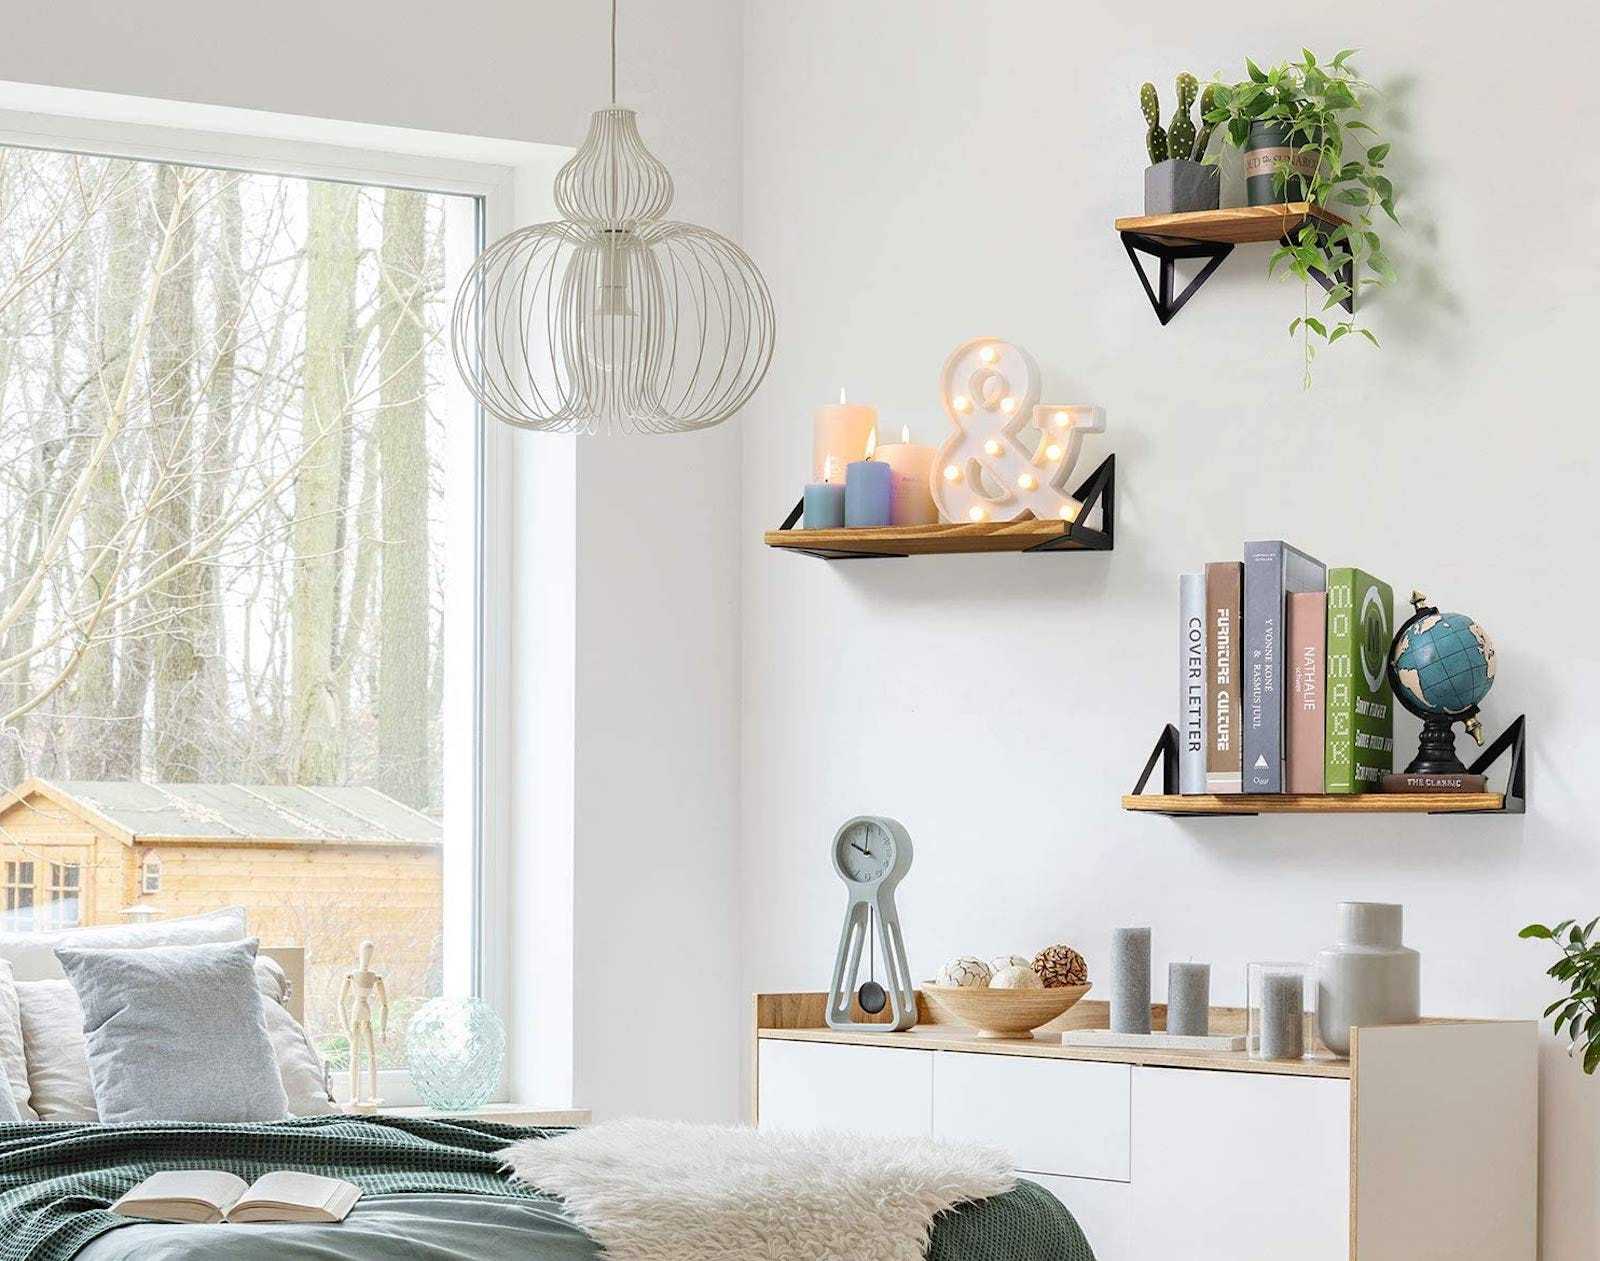 Floating shelves on a white wall, holding books, candles, and plants